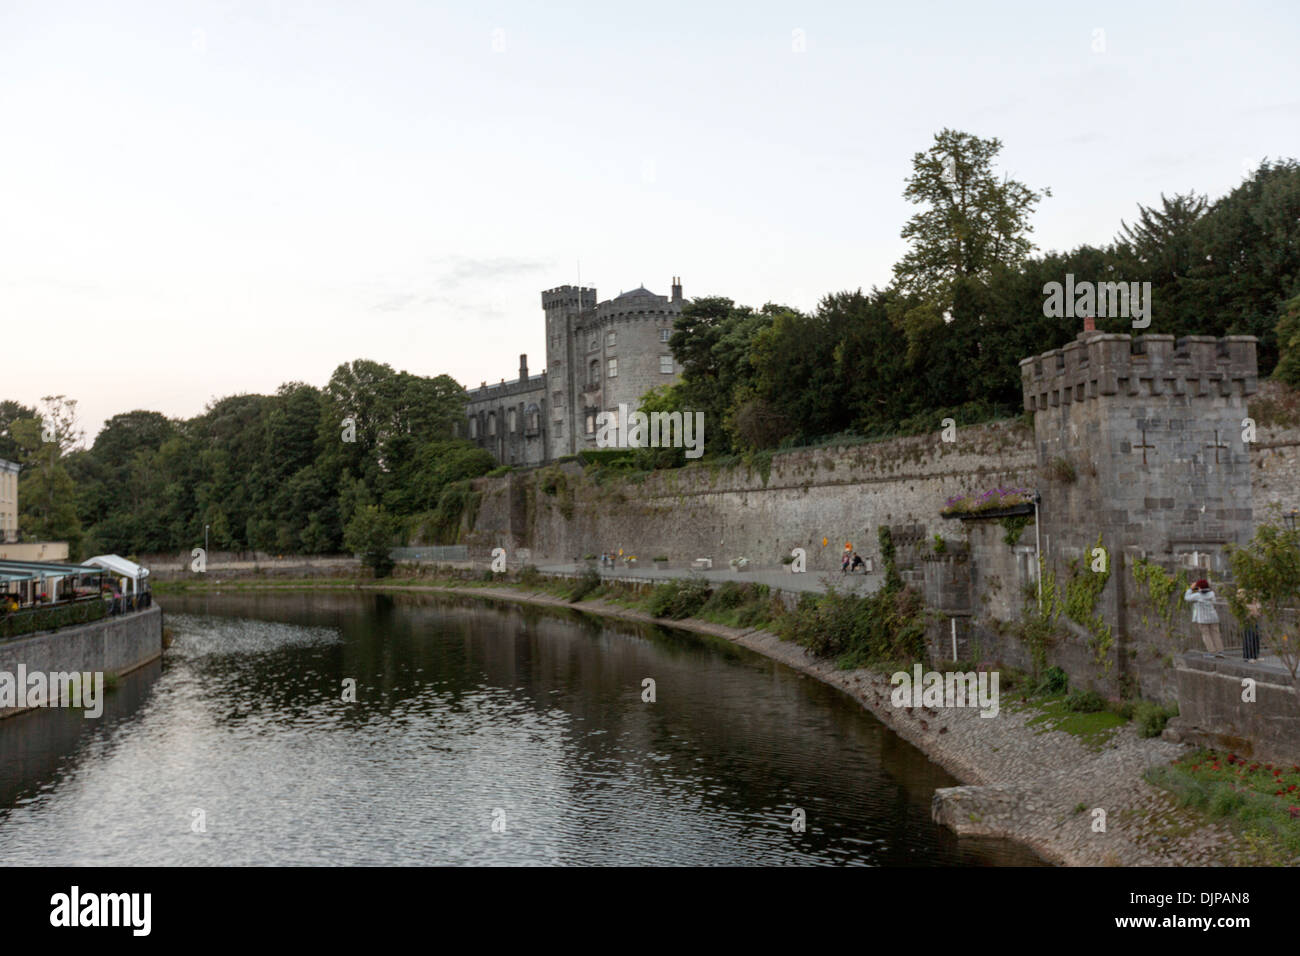 Kilkenny castle seen from the nearby River Nore. - Stock Image